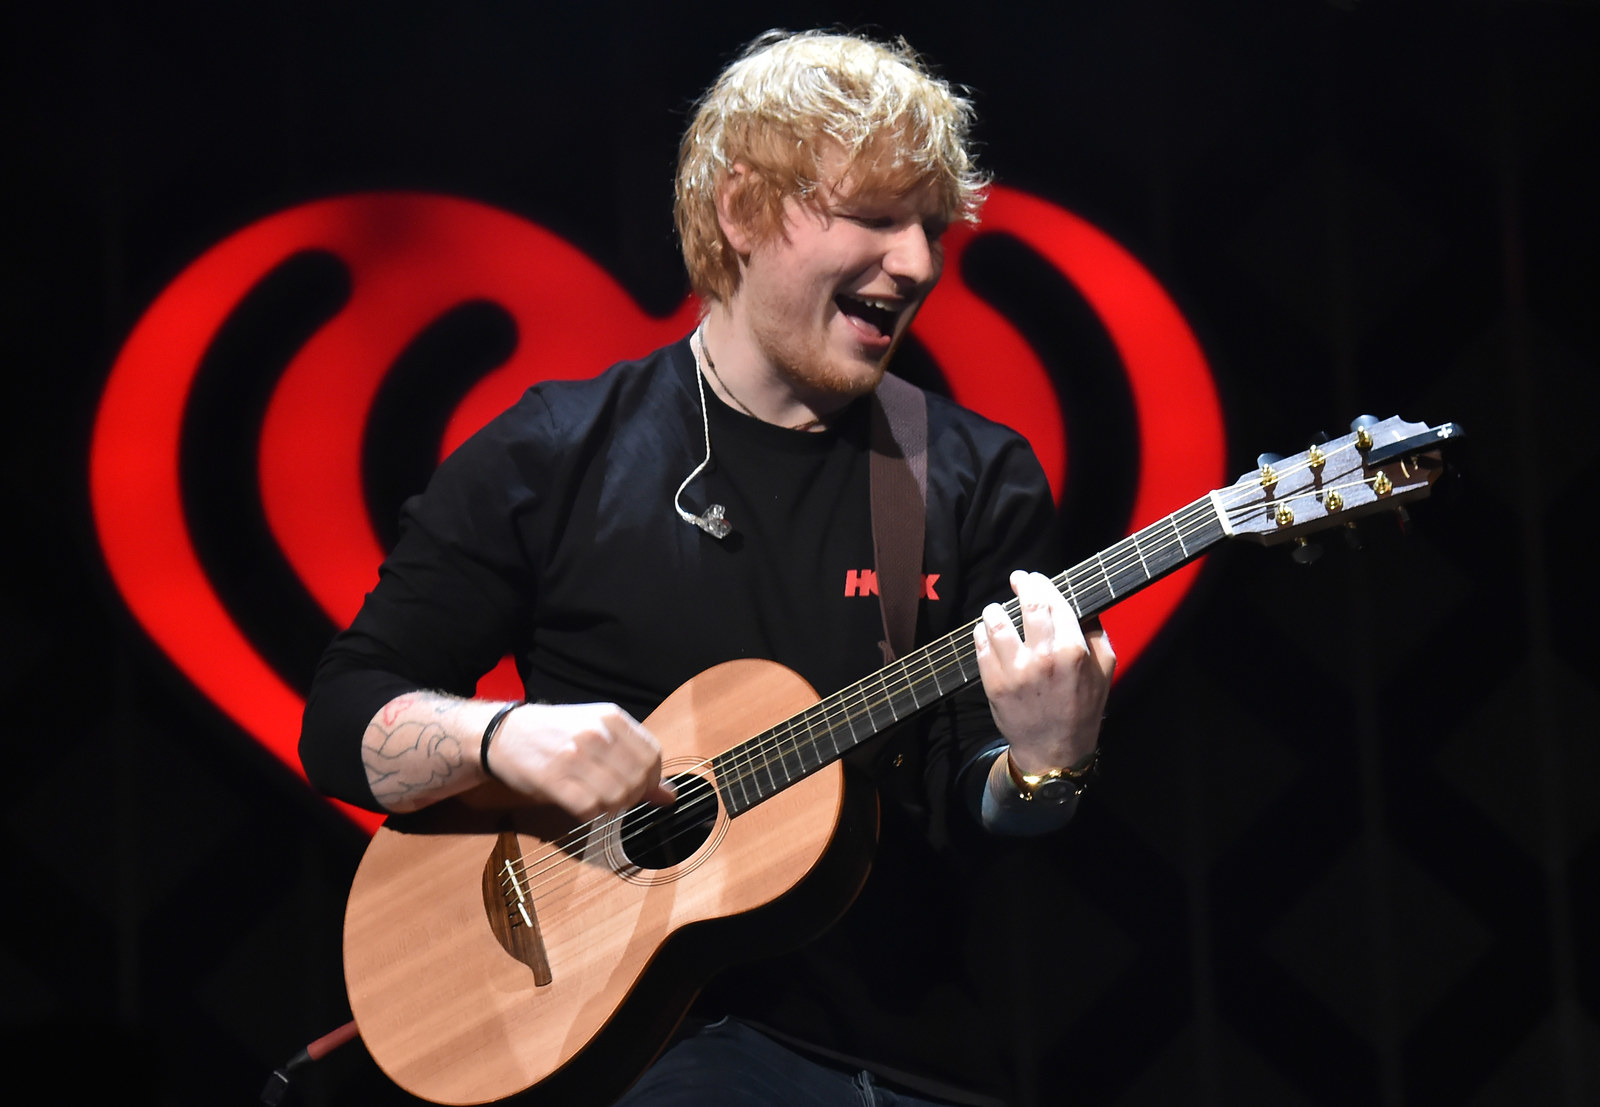 Ed Sheeran Reveals His Top Picks for His and Cherry Seaborns First Dance Song